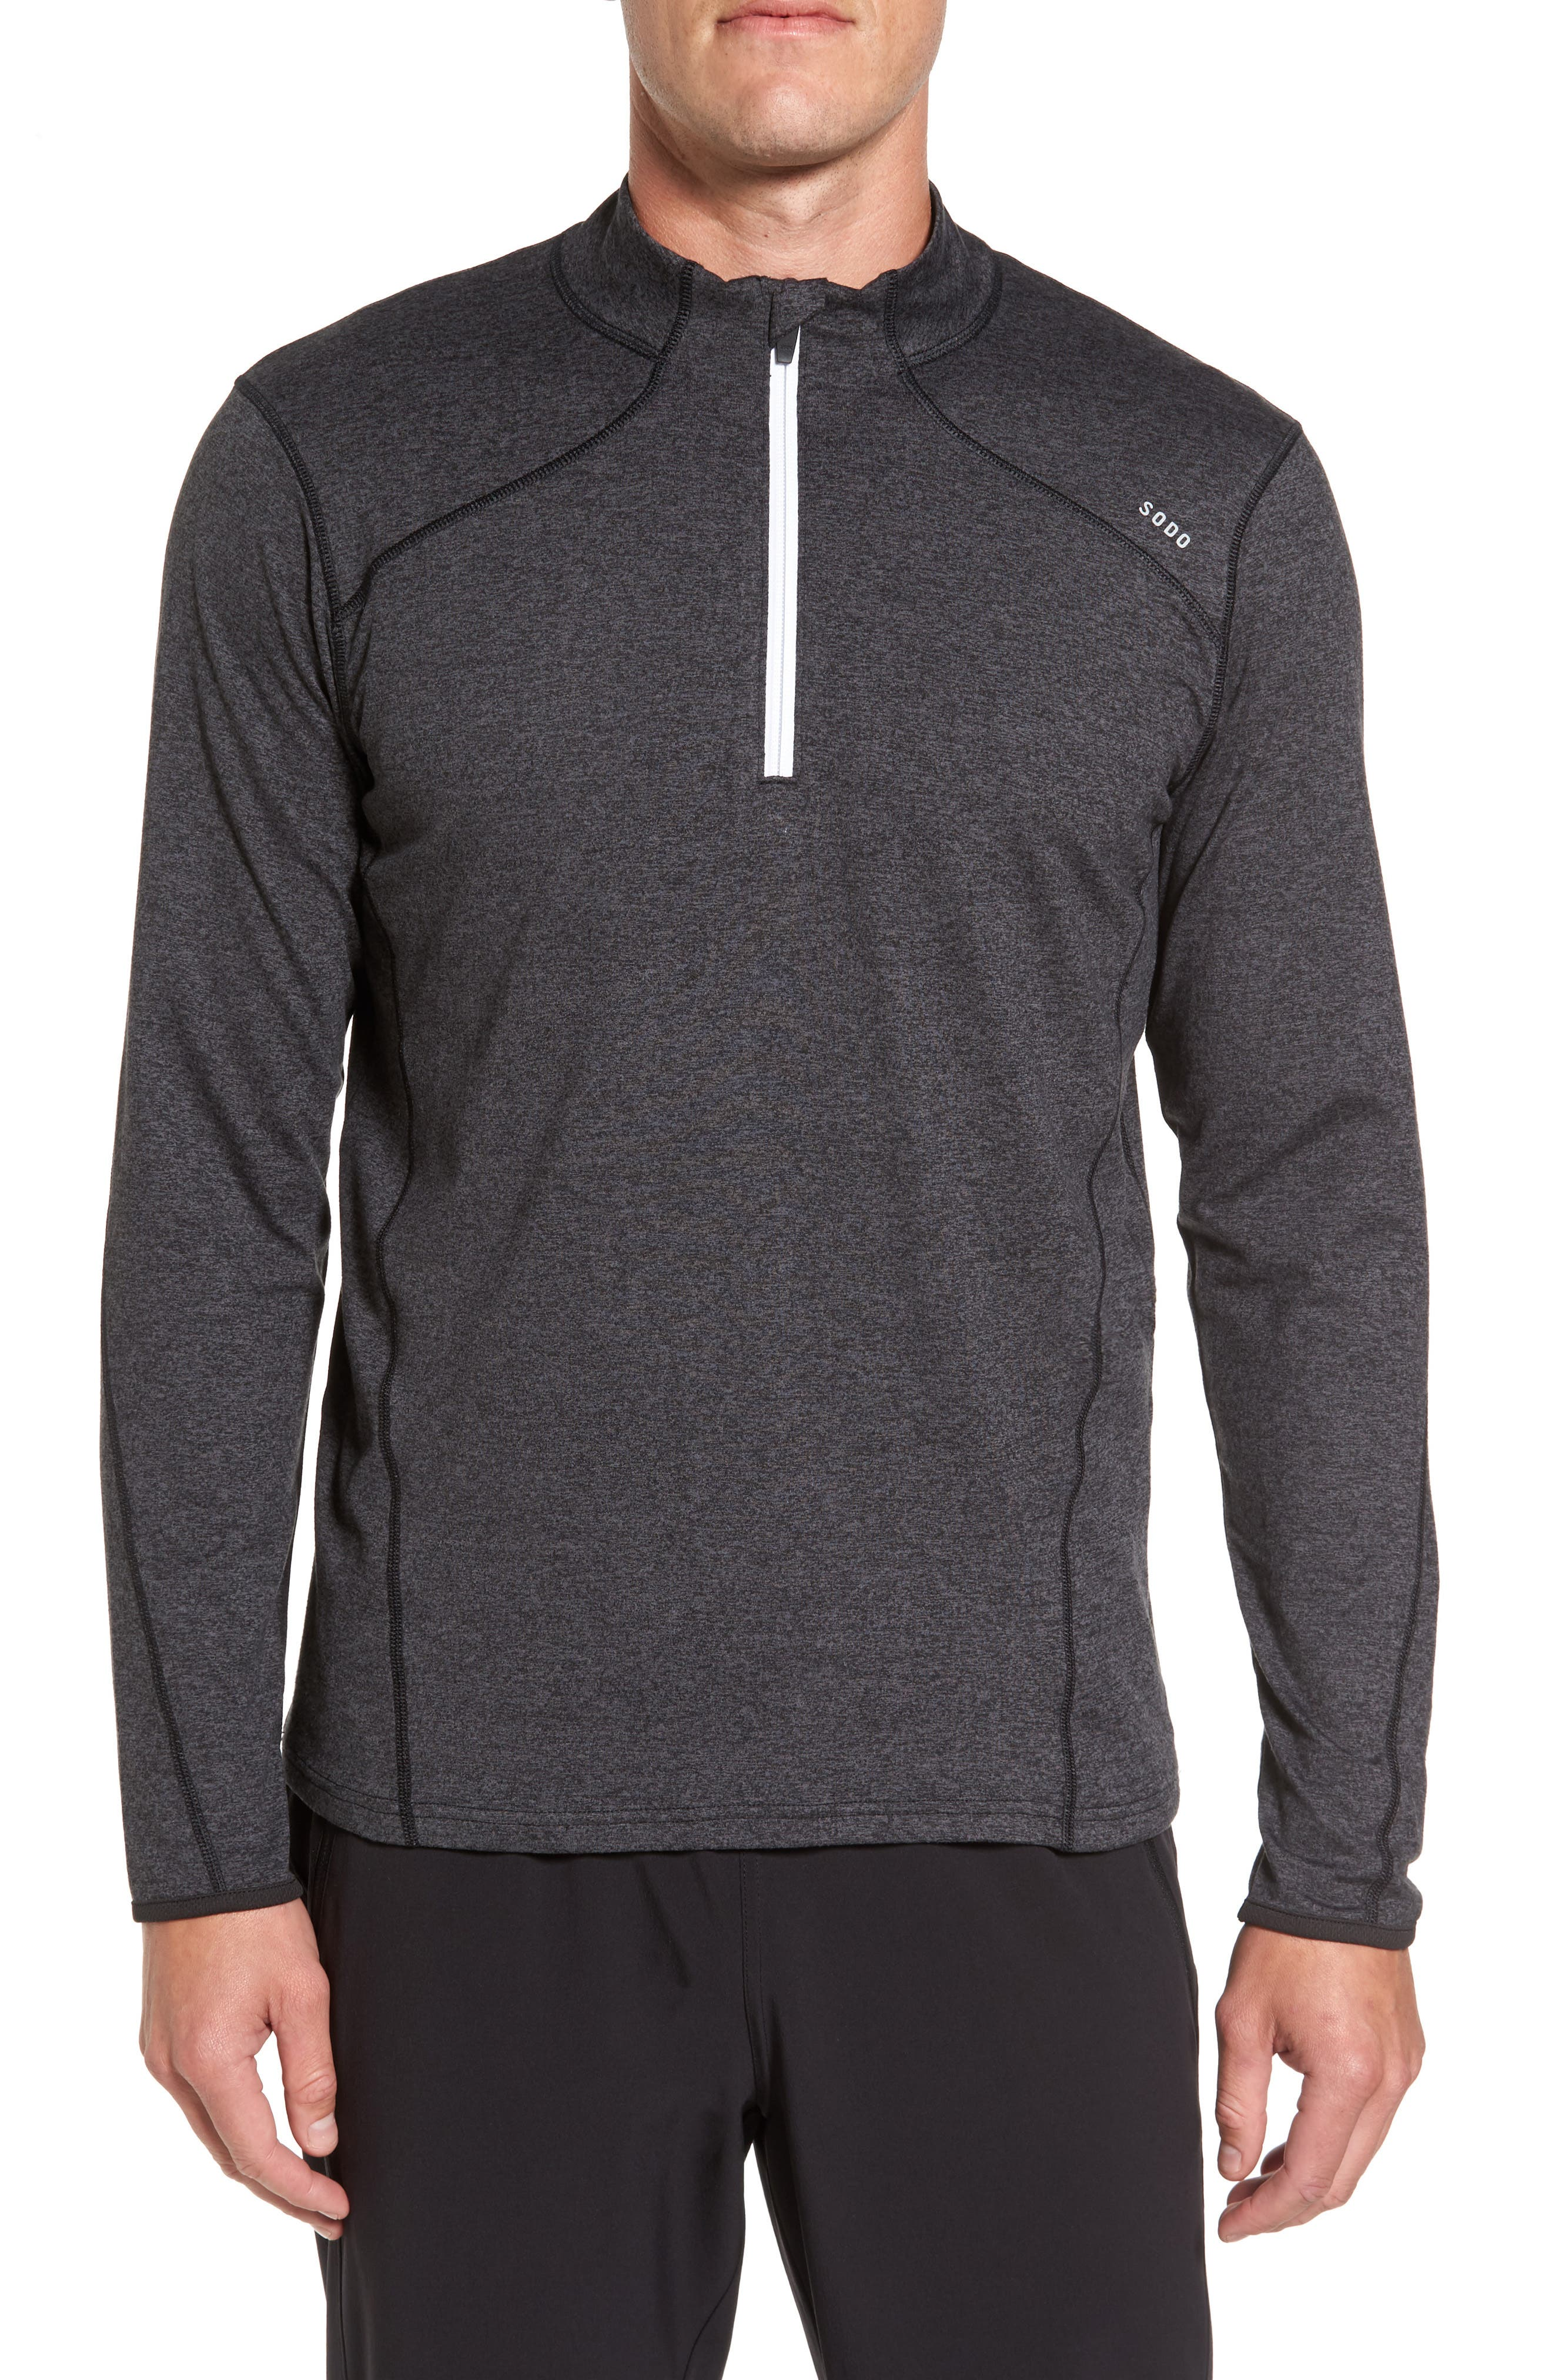 'Elevate' Moisture Wicking Stretch Quarter Zip Pullover,                         Main,                         color, 001